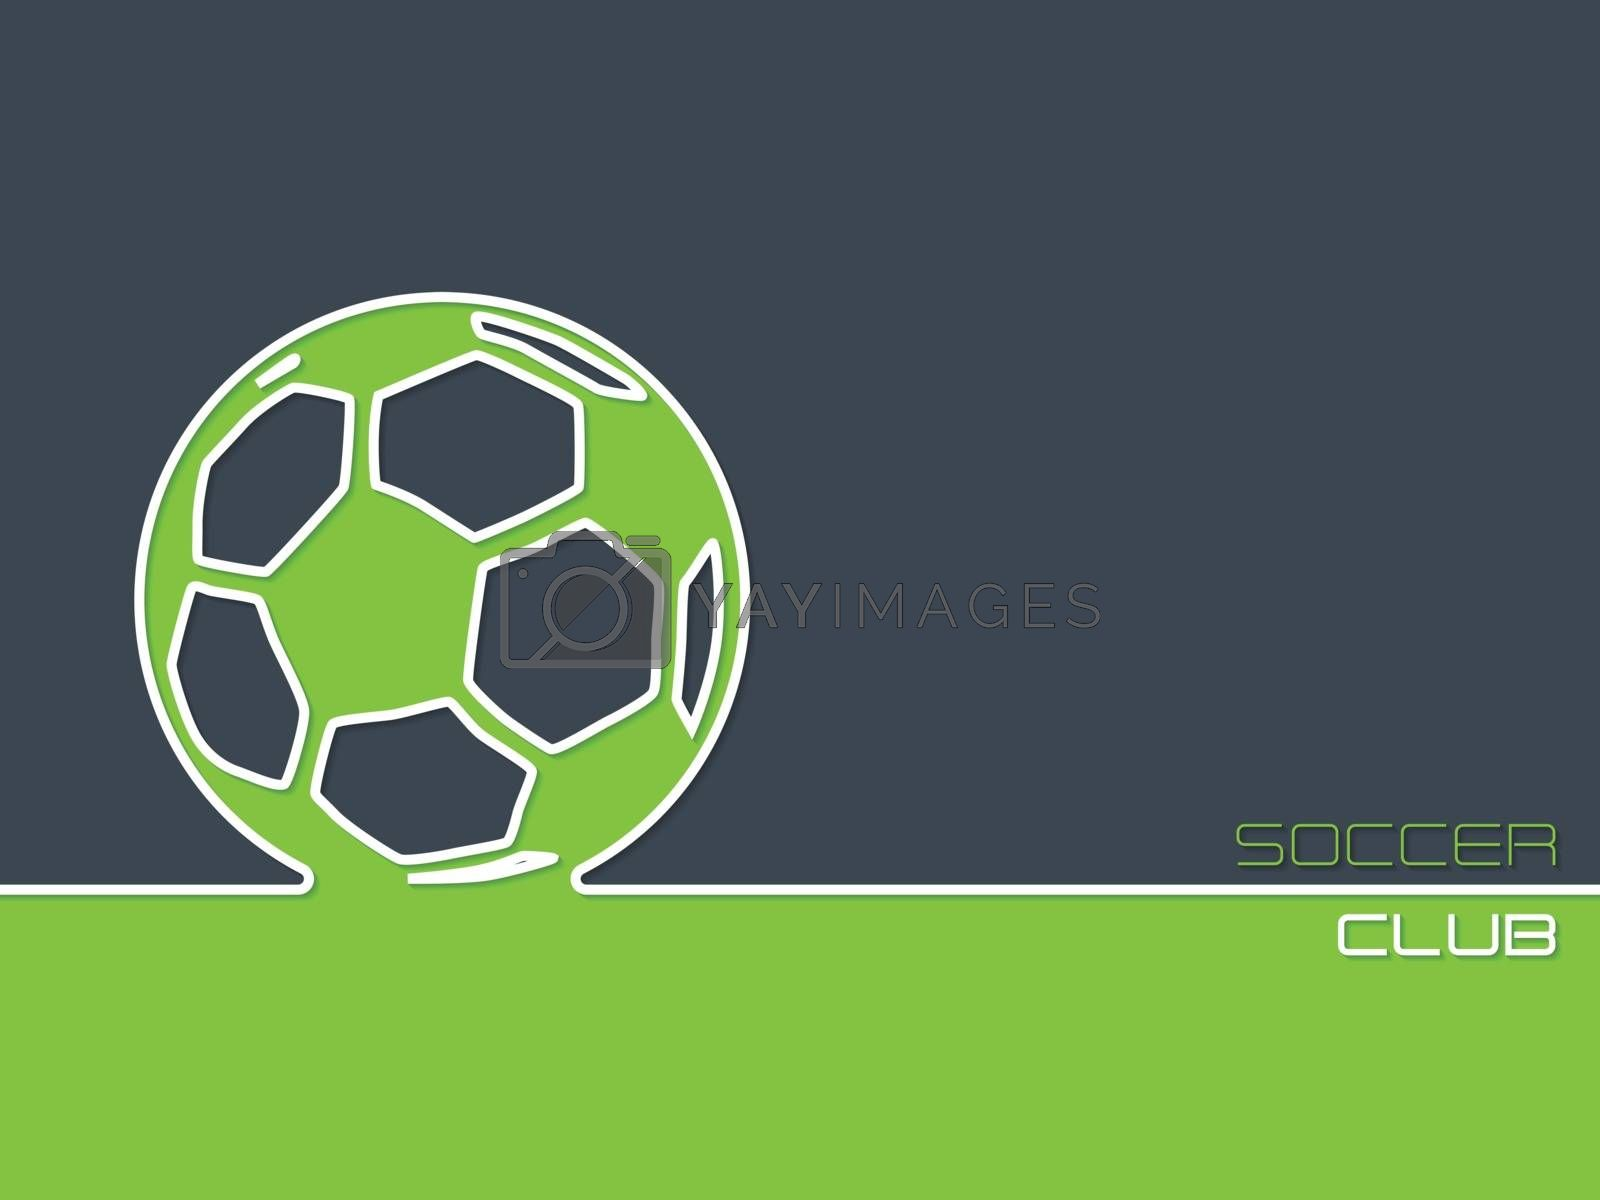 Soccer club advertising background design flat style